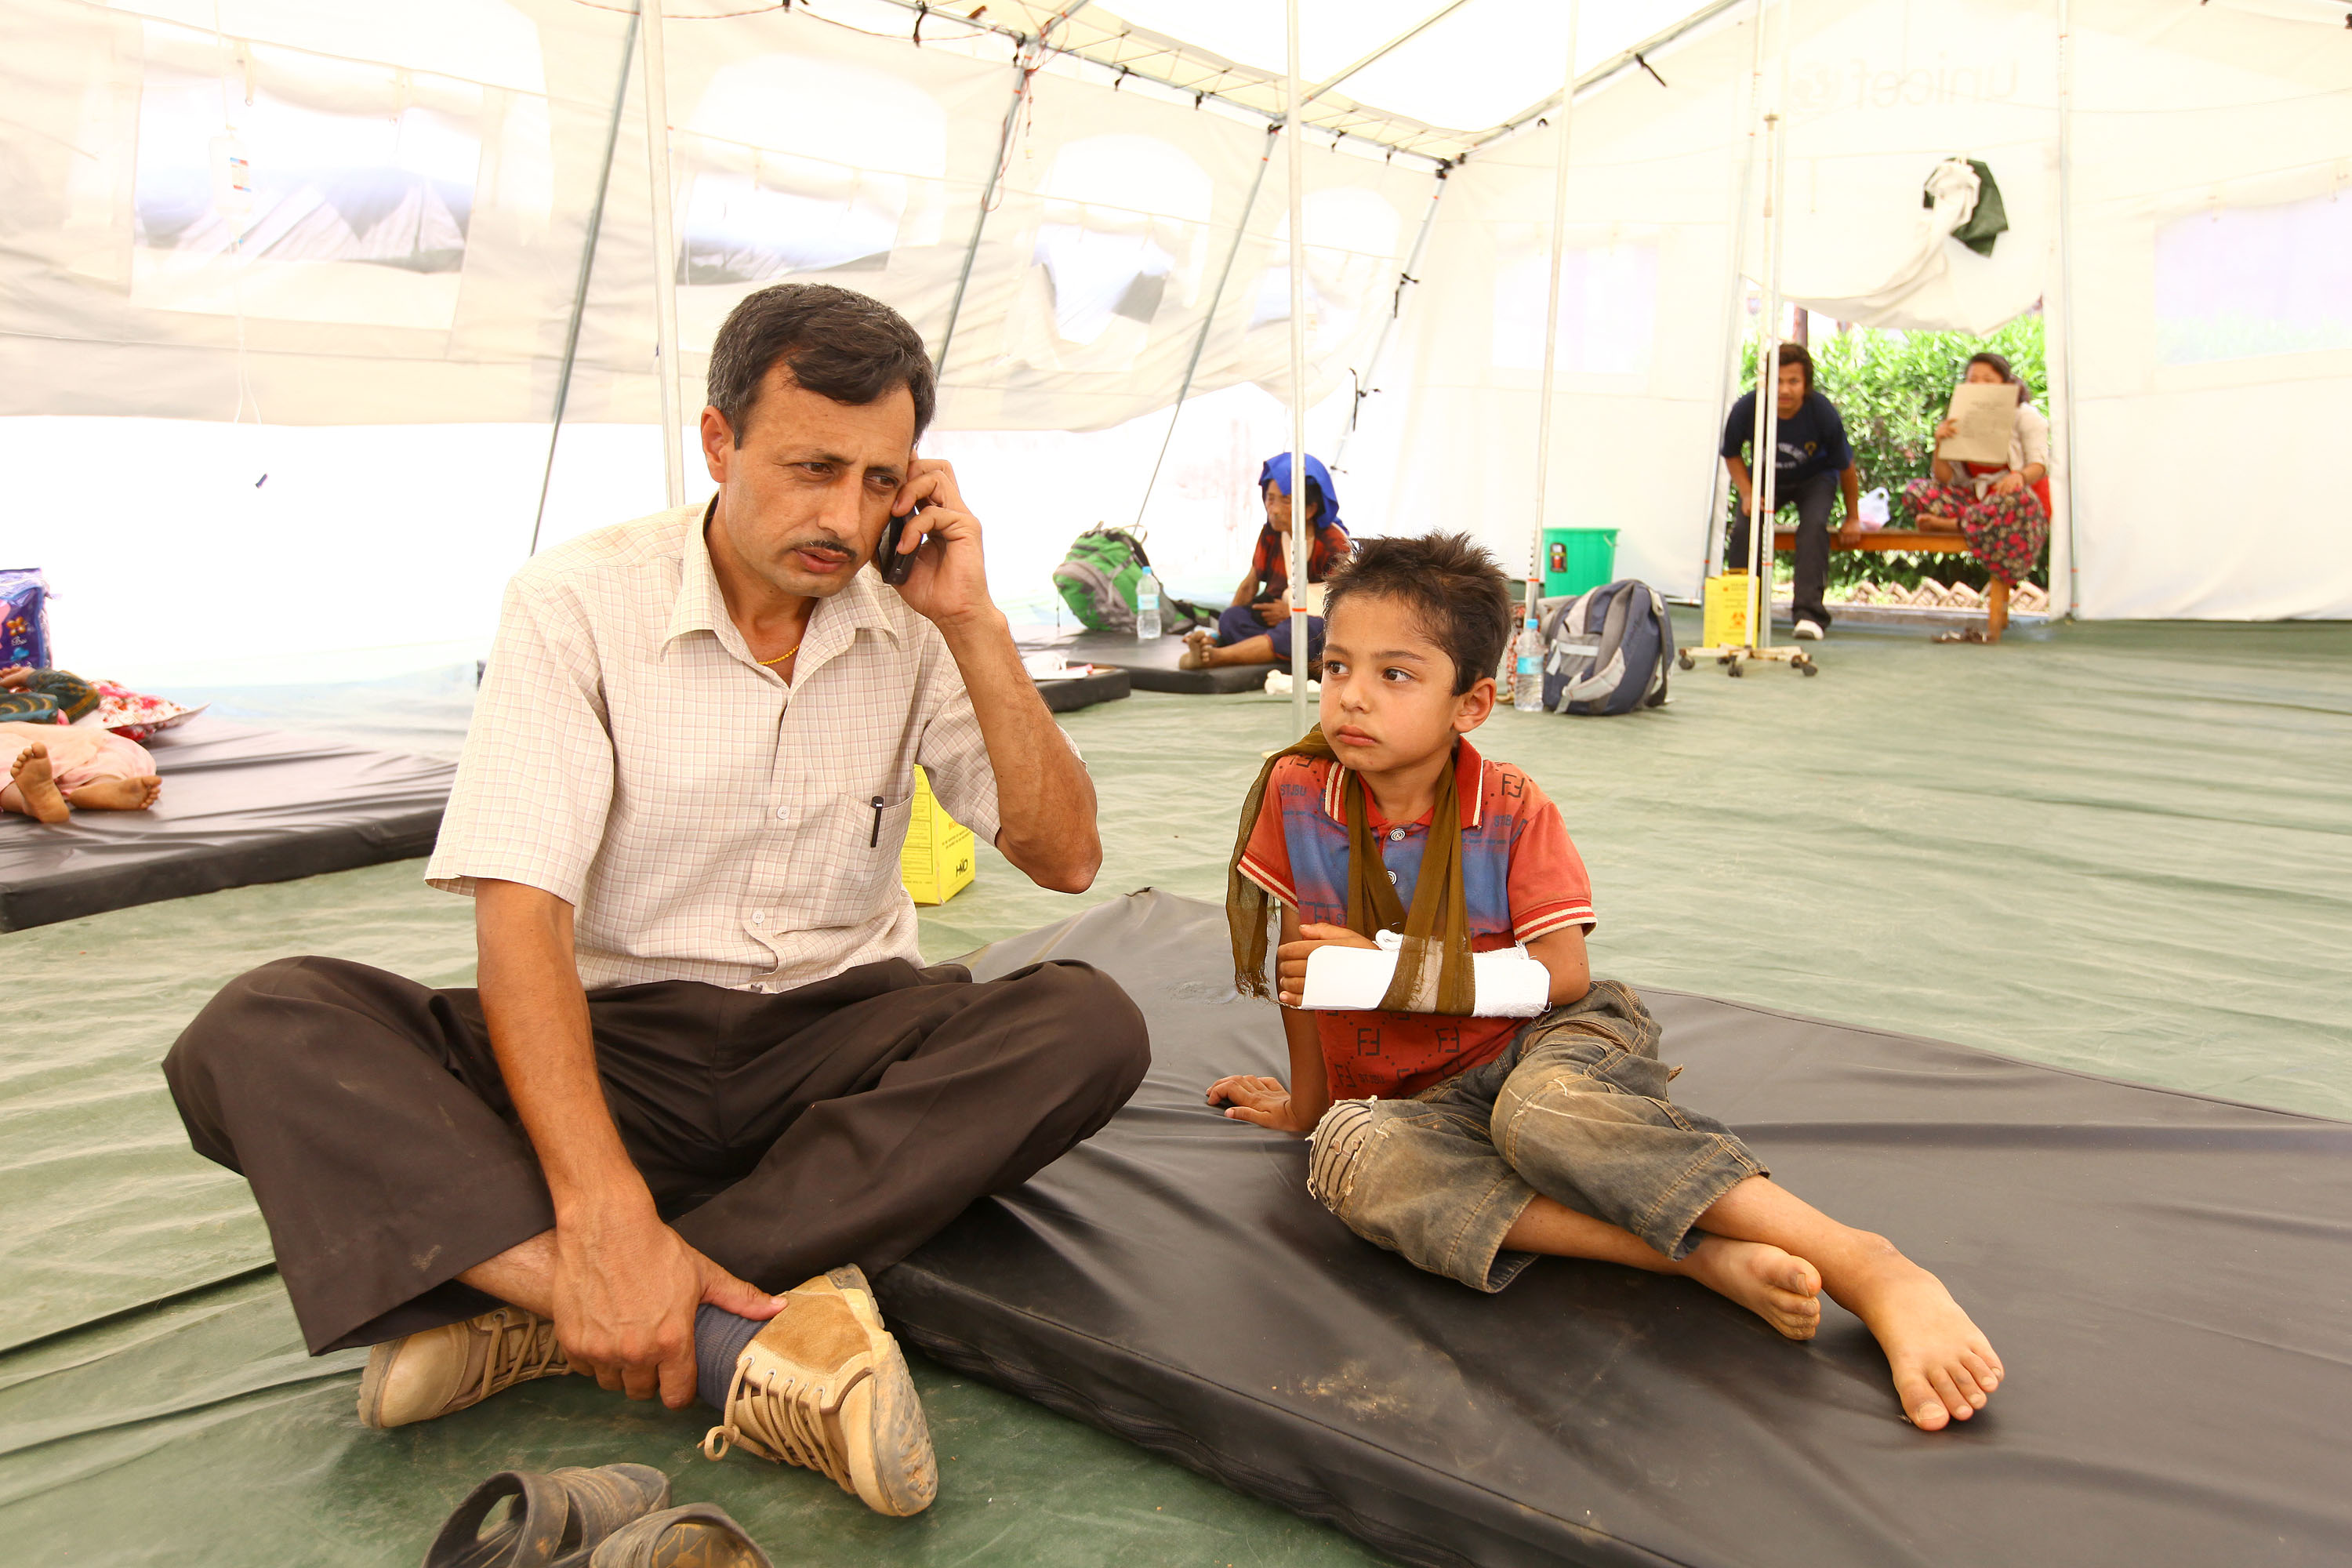 Chiranjibi Adhikari with his injured 6-year-old son, Kritagya, speaks with a psychosocial counsellor live via his mobile telephone, during a segment of the UNICEF-supported Bhandai Sundai (Saying Listening) radio programme